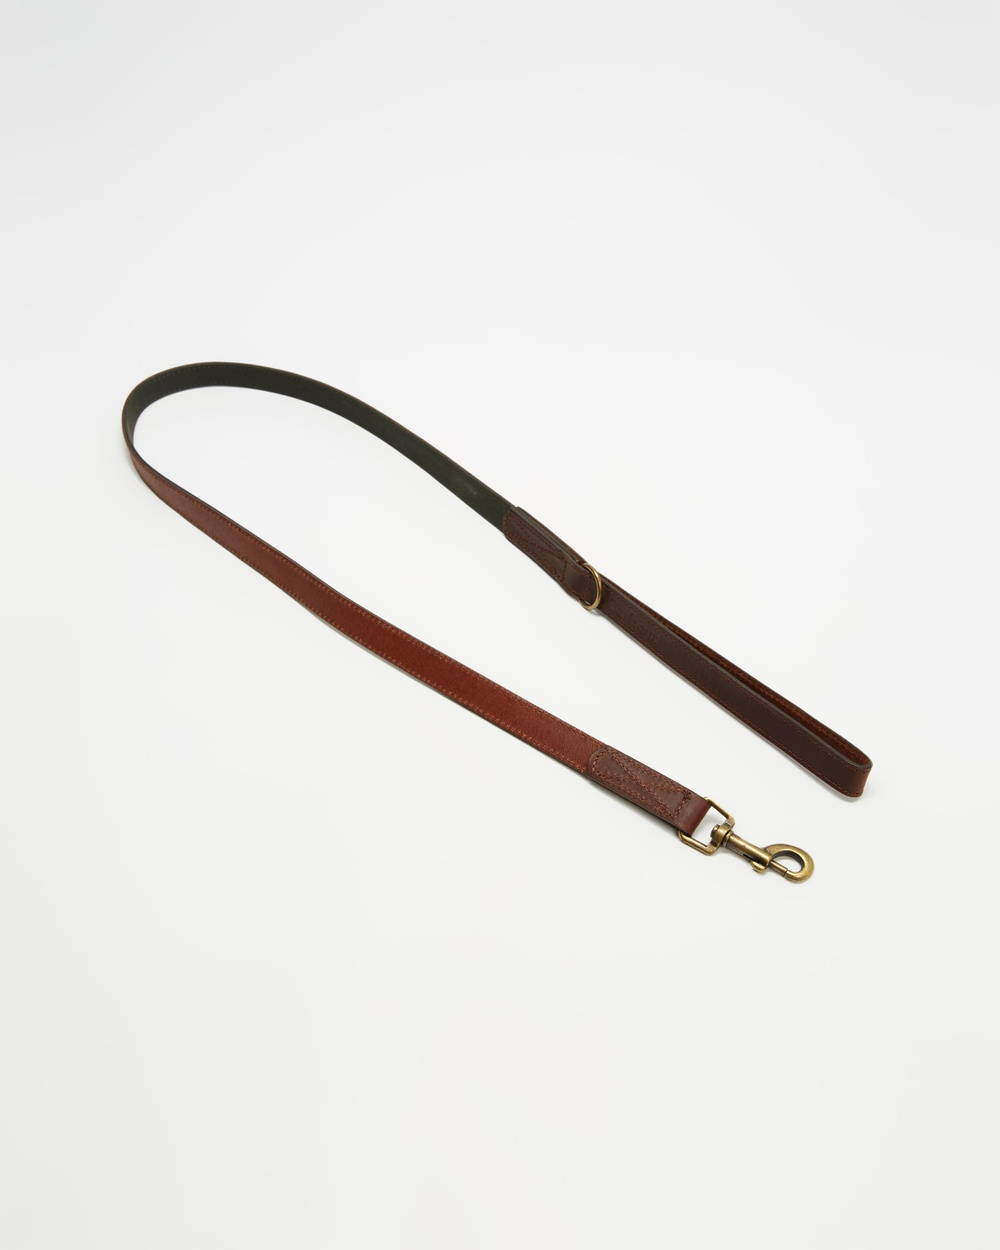 Barbour Wax Leather Dog Lead Pets Olive Wax Leather Dog Lead